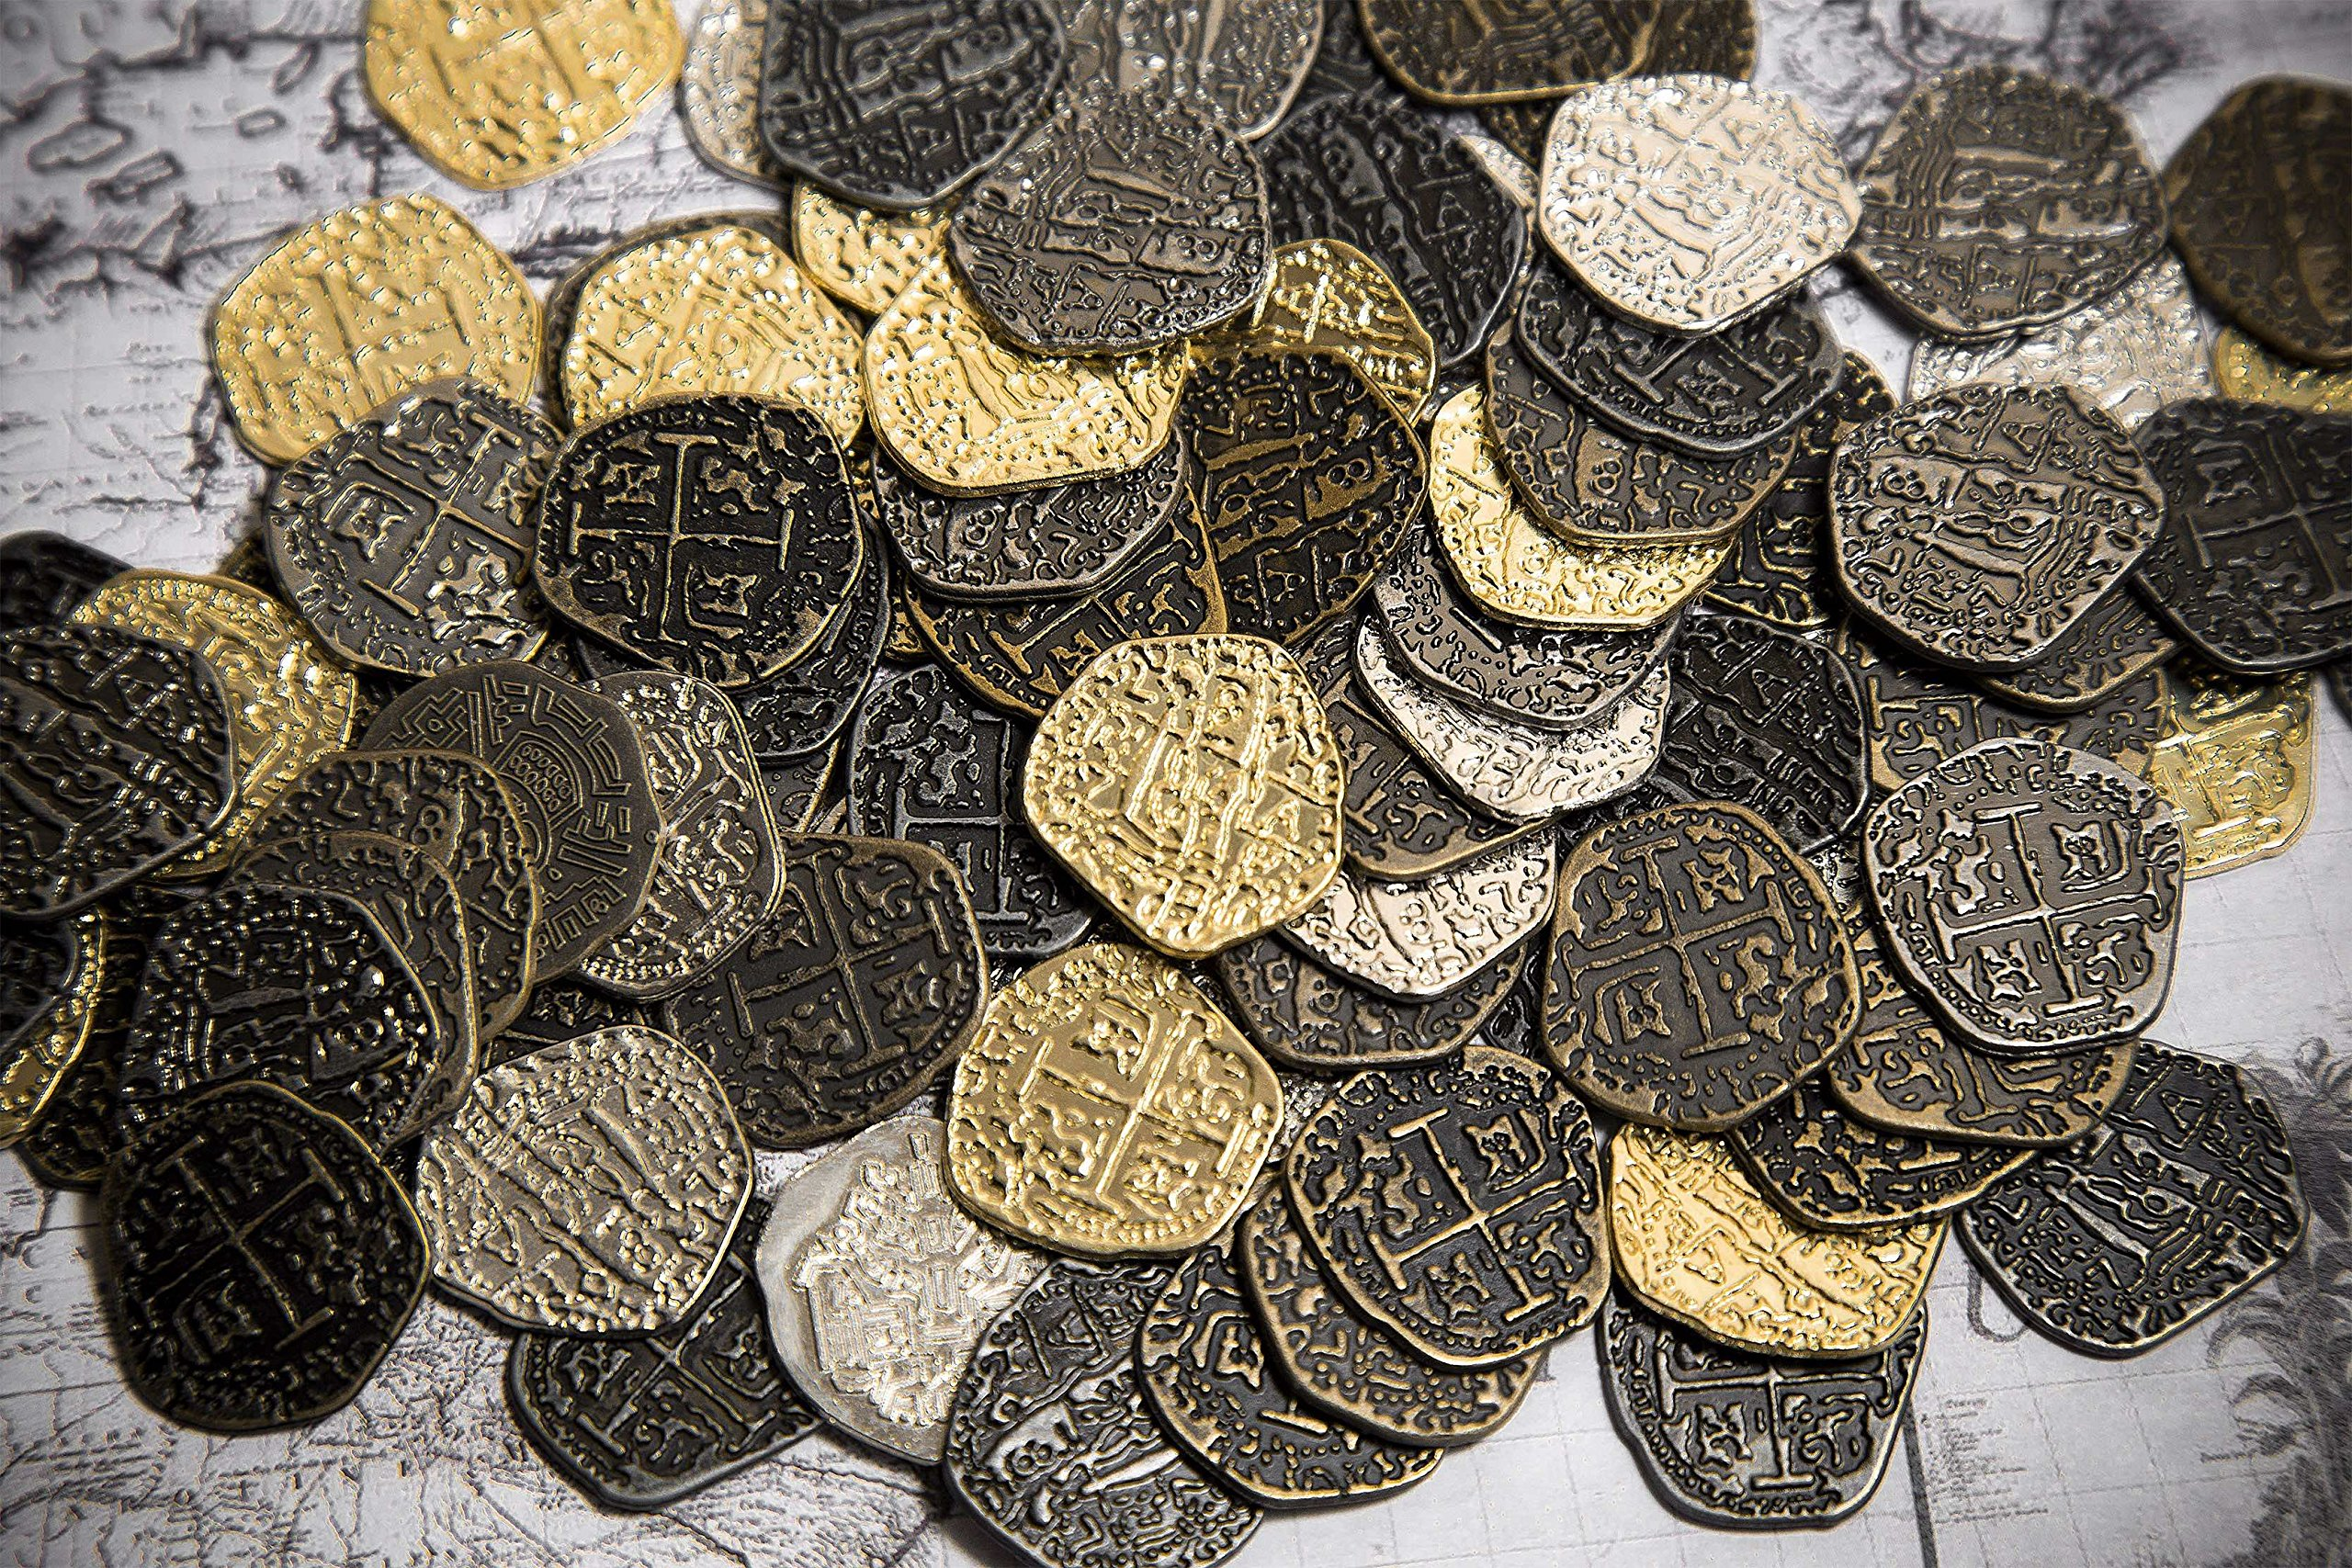 200 Pirate Coins - Metal Gold and Silver Doubloon Replicas